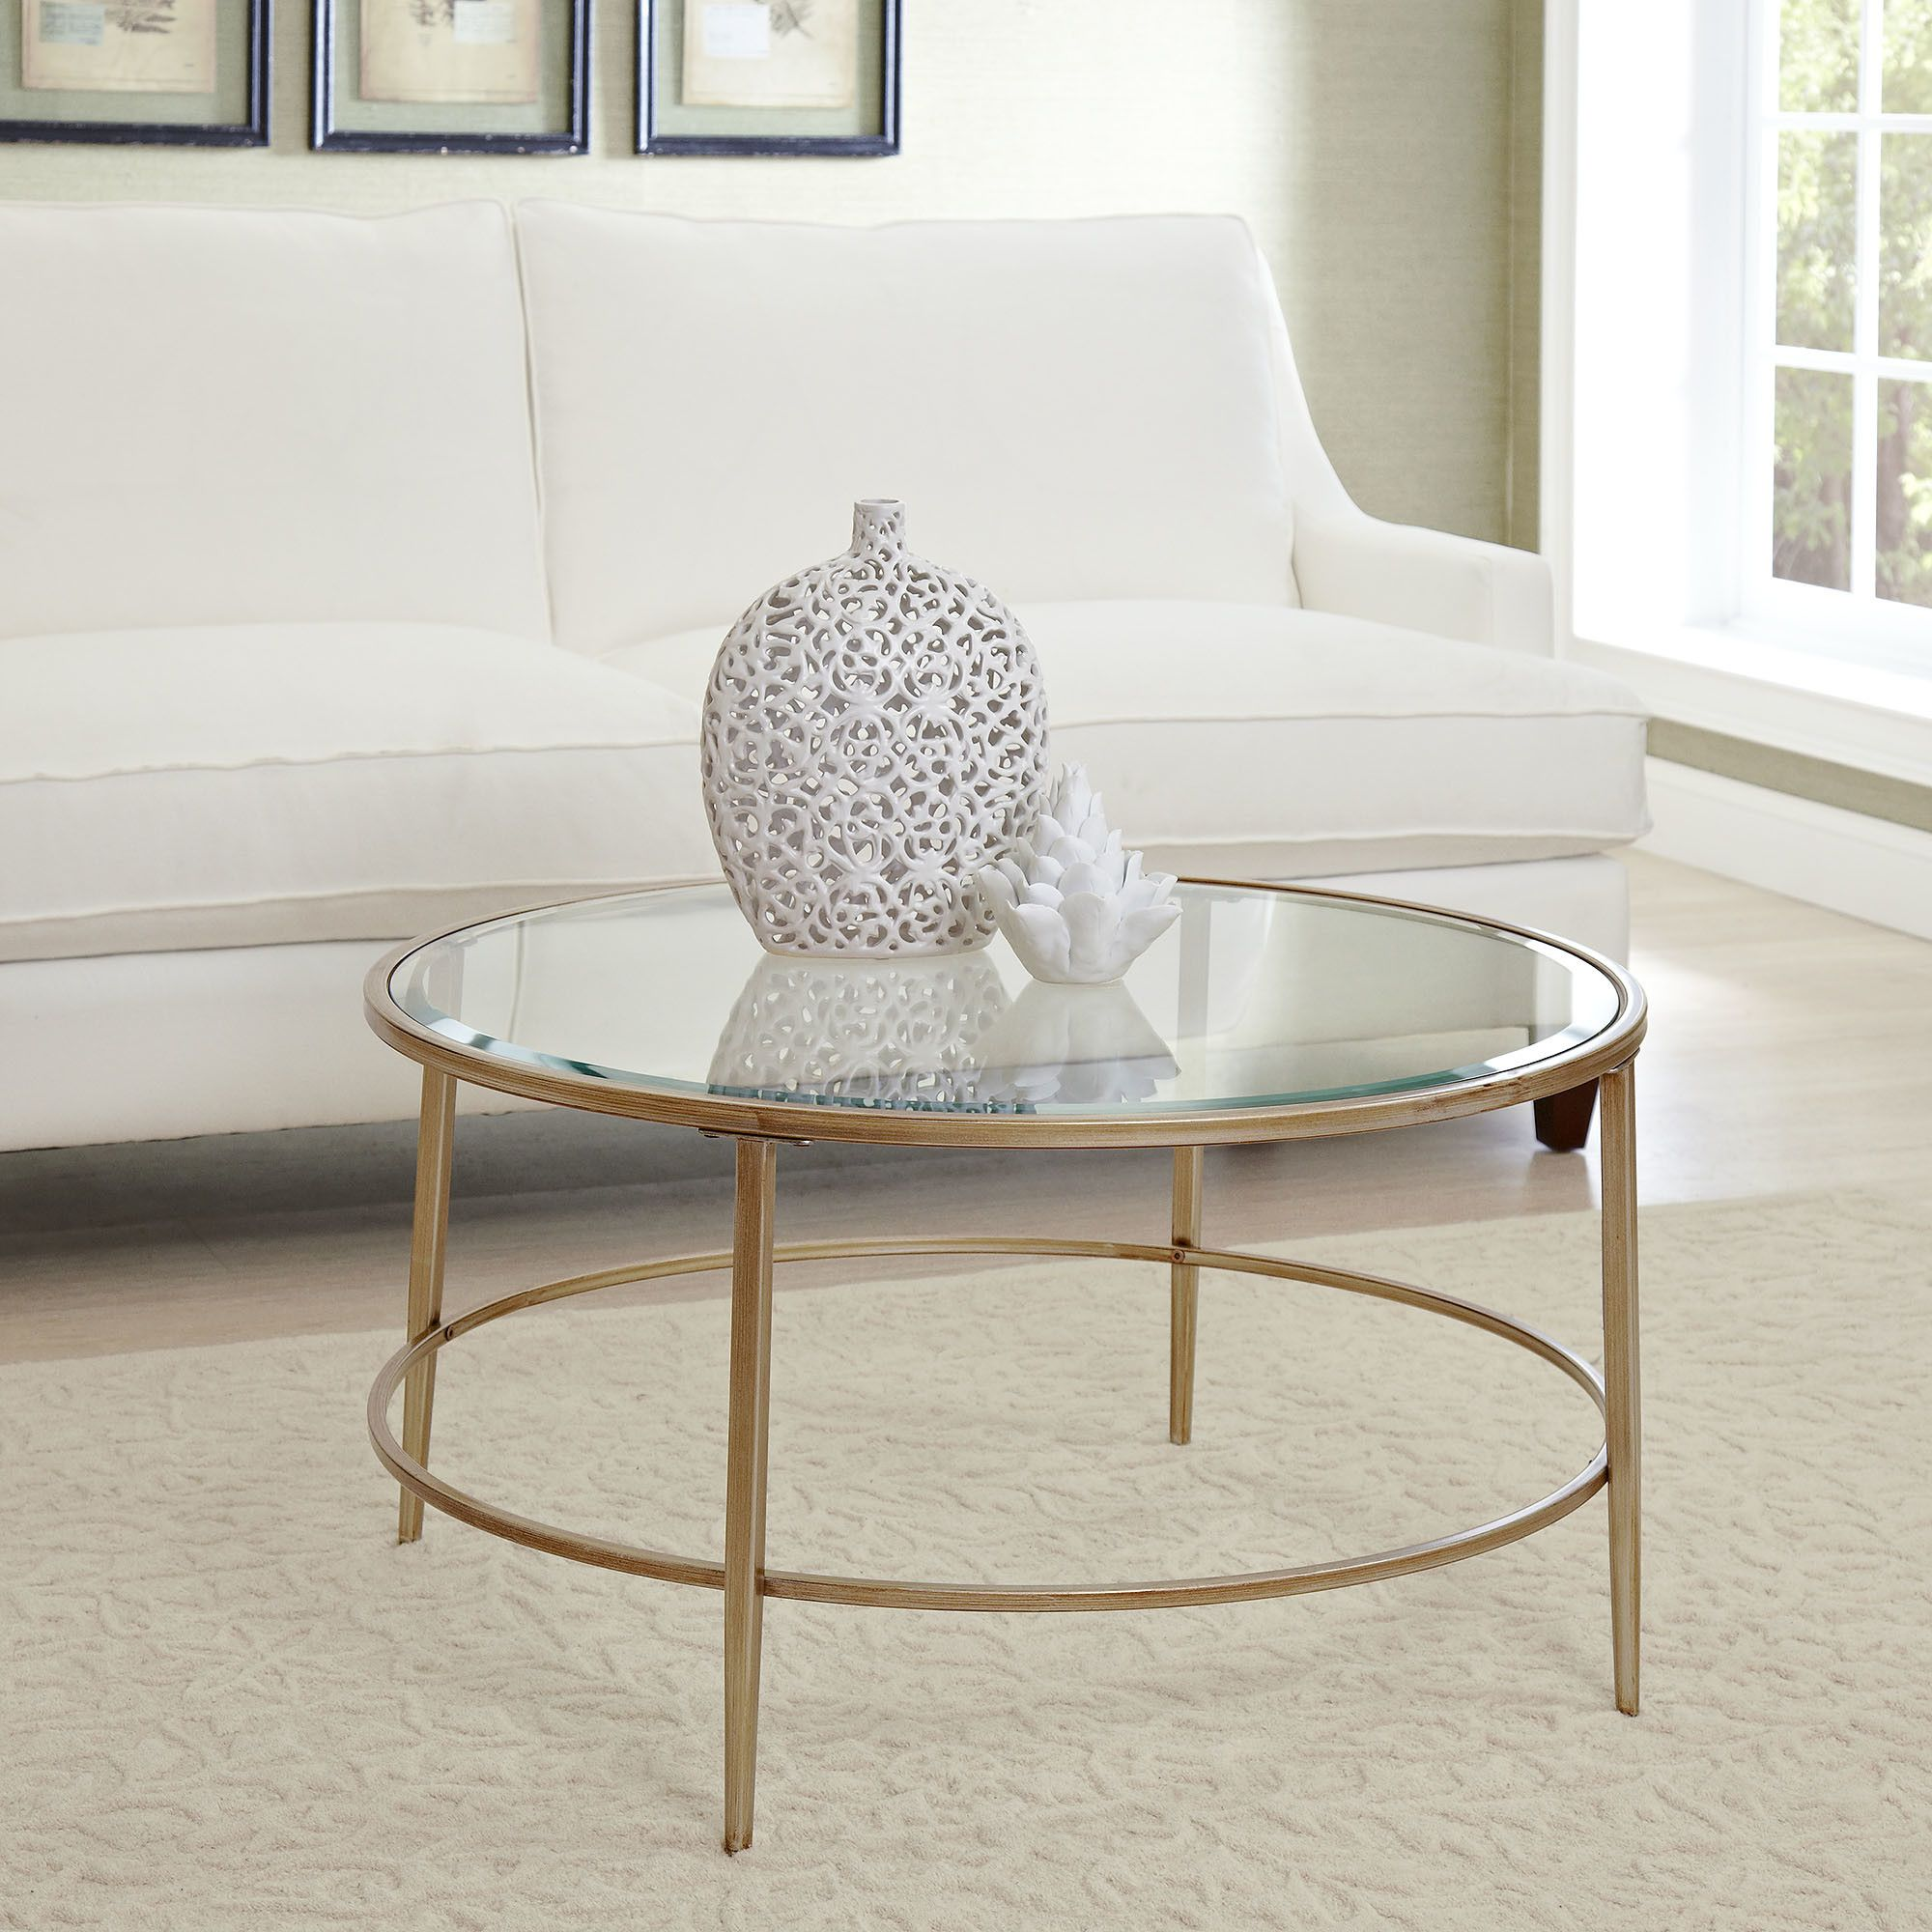 Glass coffee table in living room birch lane nash round coffee table  birch lane  decorating